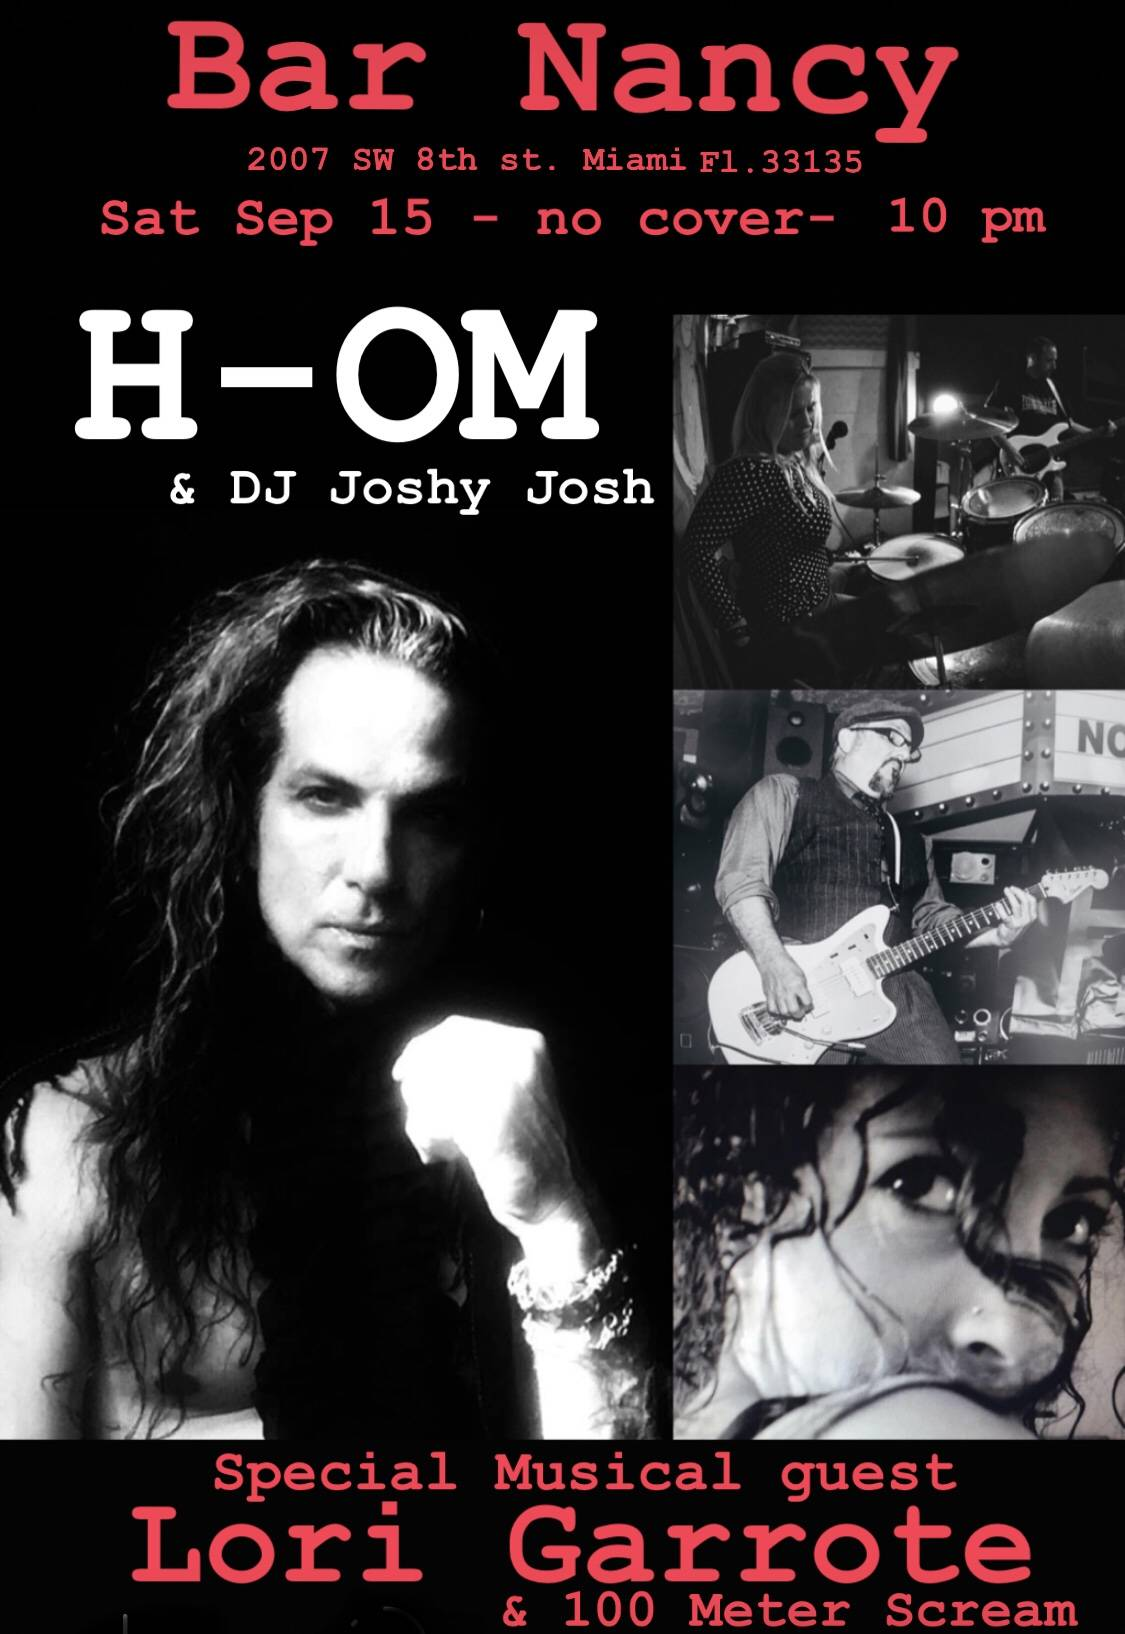 H-OM, Lori Garrote, 100 Meter Scream - SEP 15 - NO COVER - 10PM - DJ JOSHY JOSH